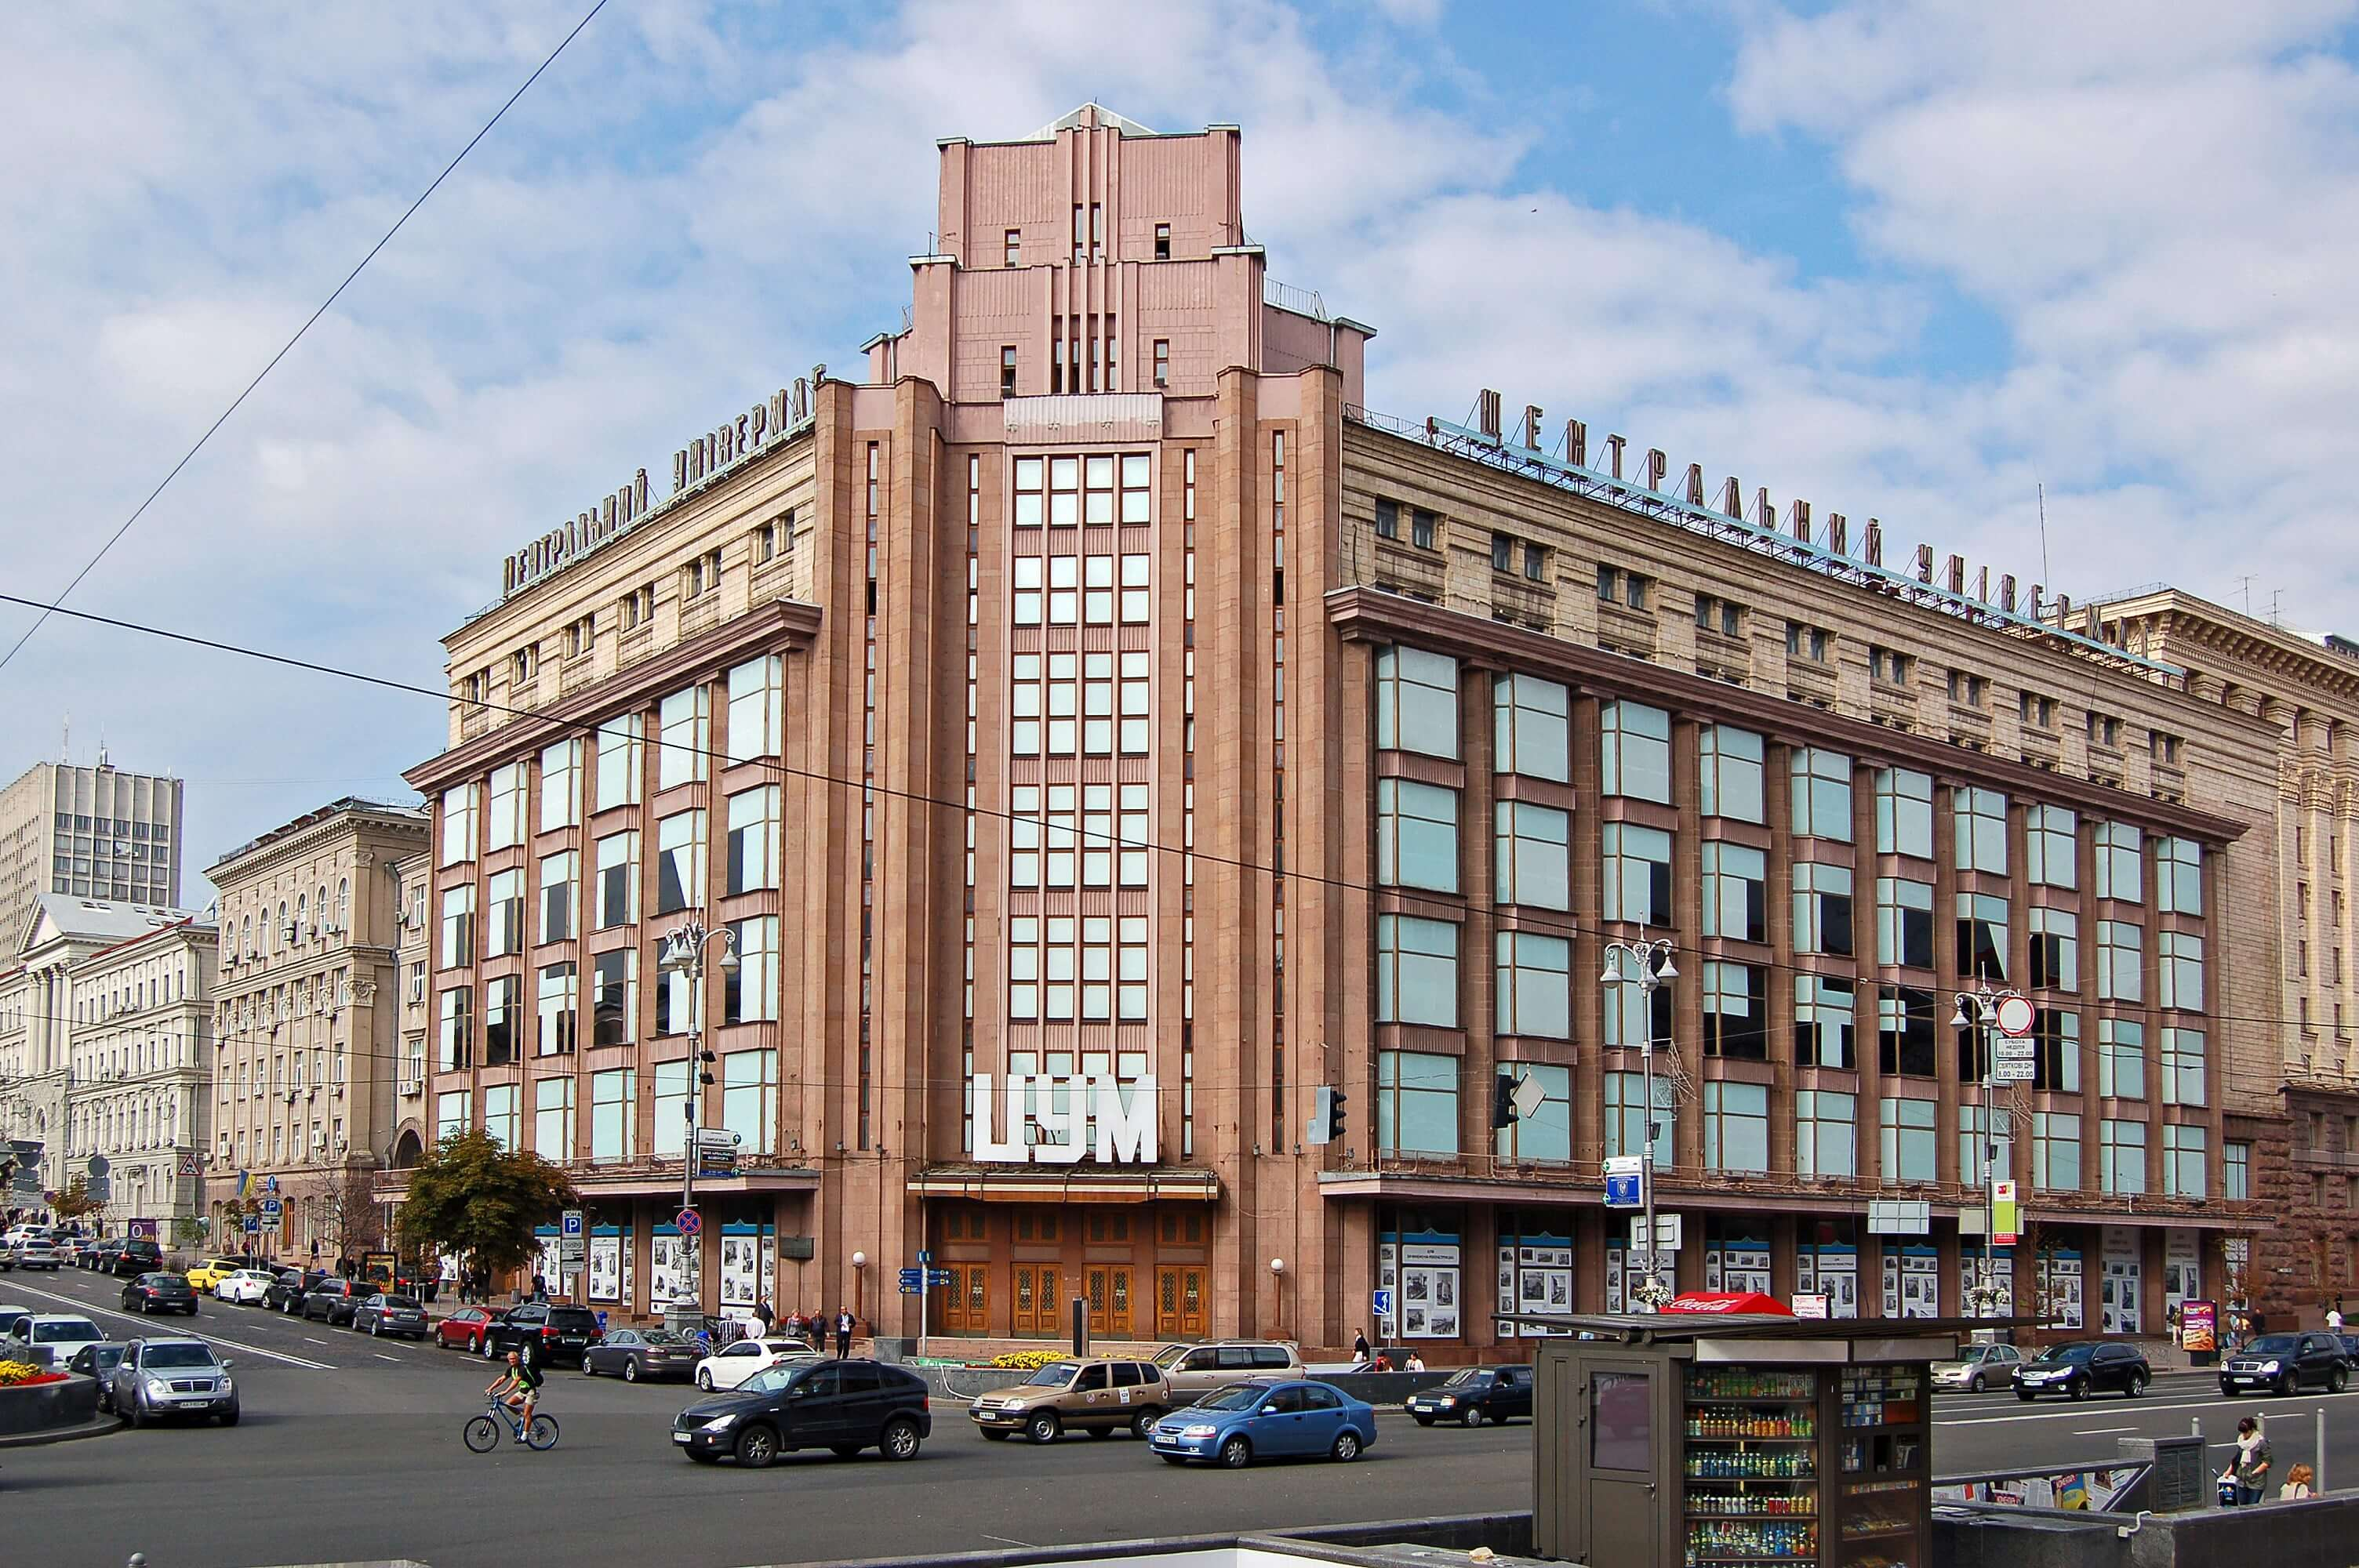 The Central Department Store